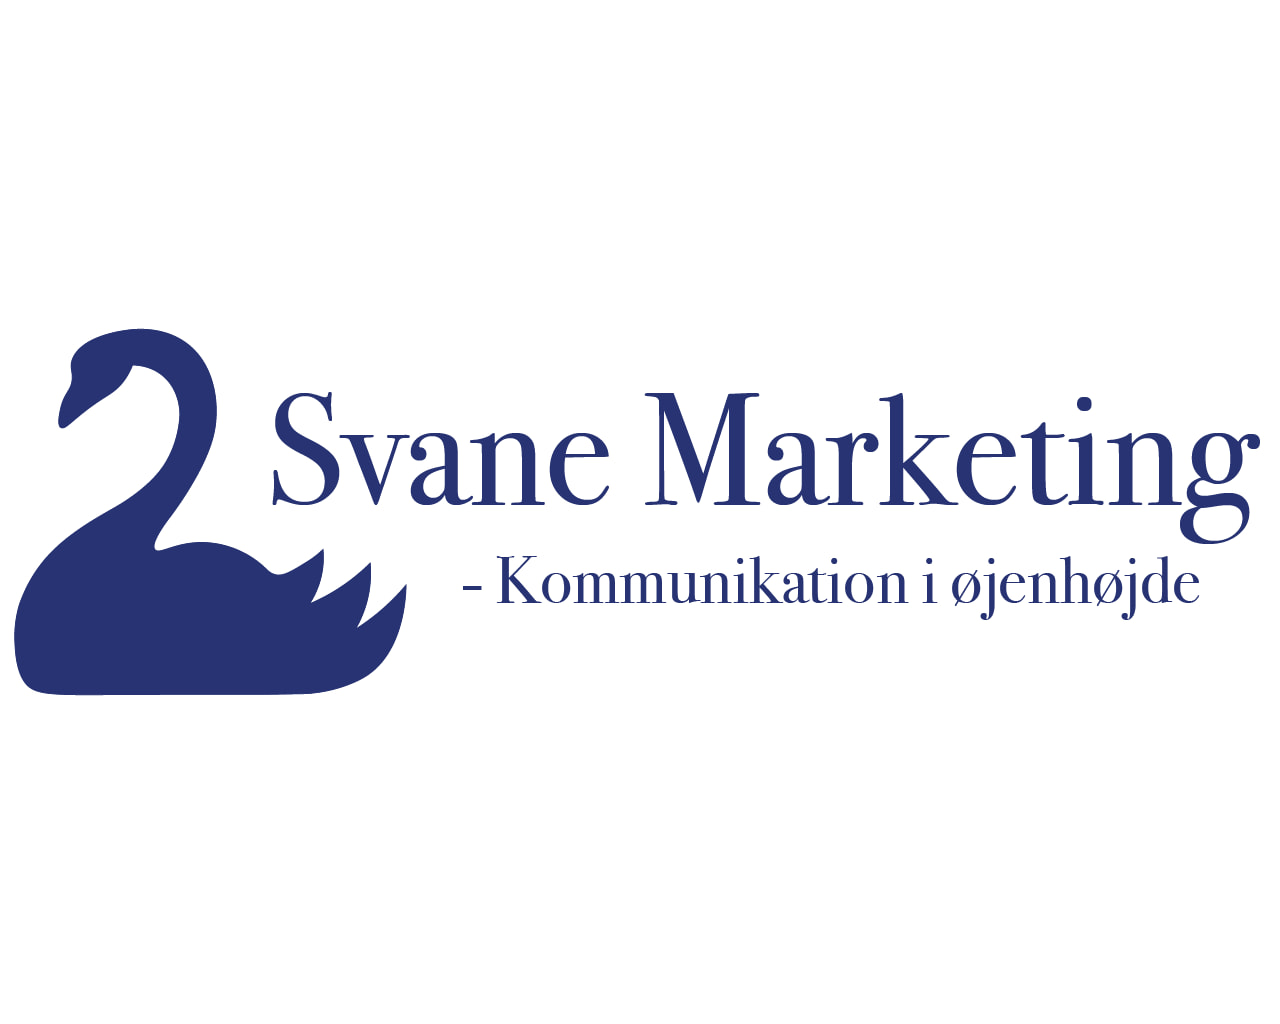 Svane Marketing